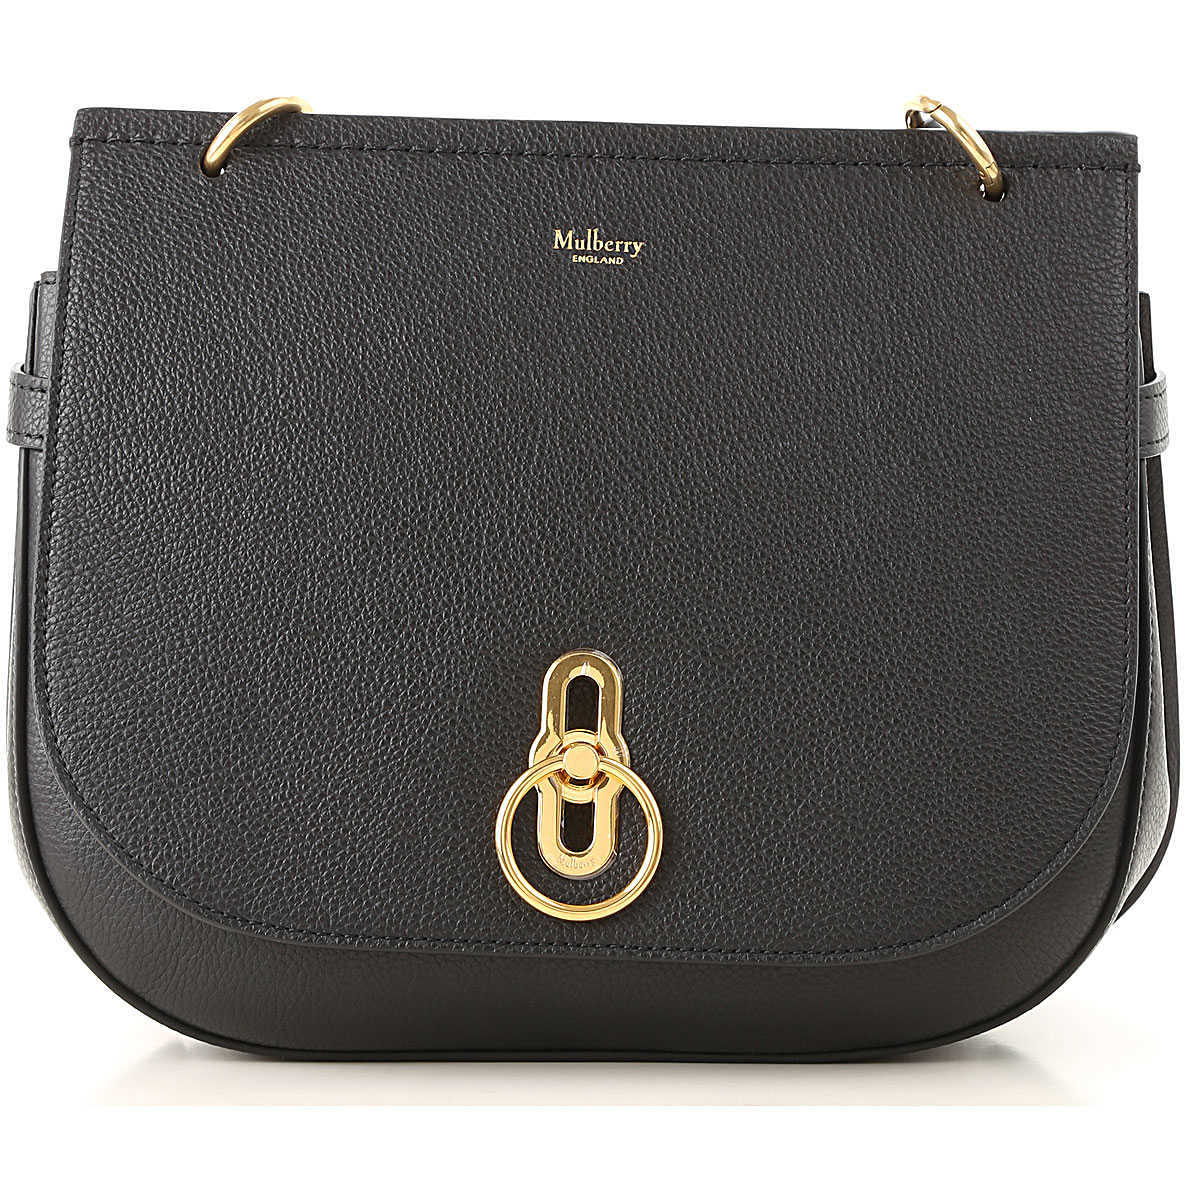 Mulberry Tote Bag On Sale Clay UK - GOOFASH